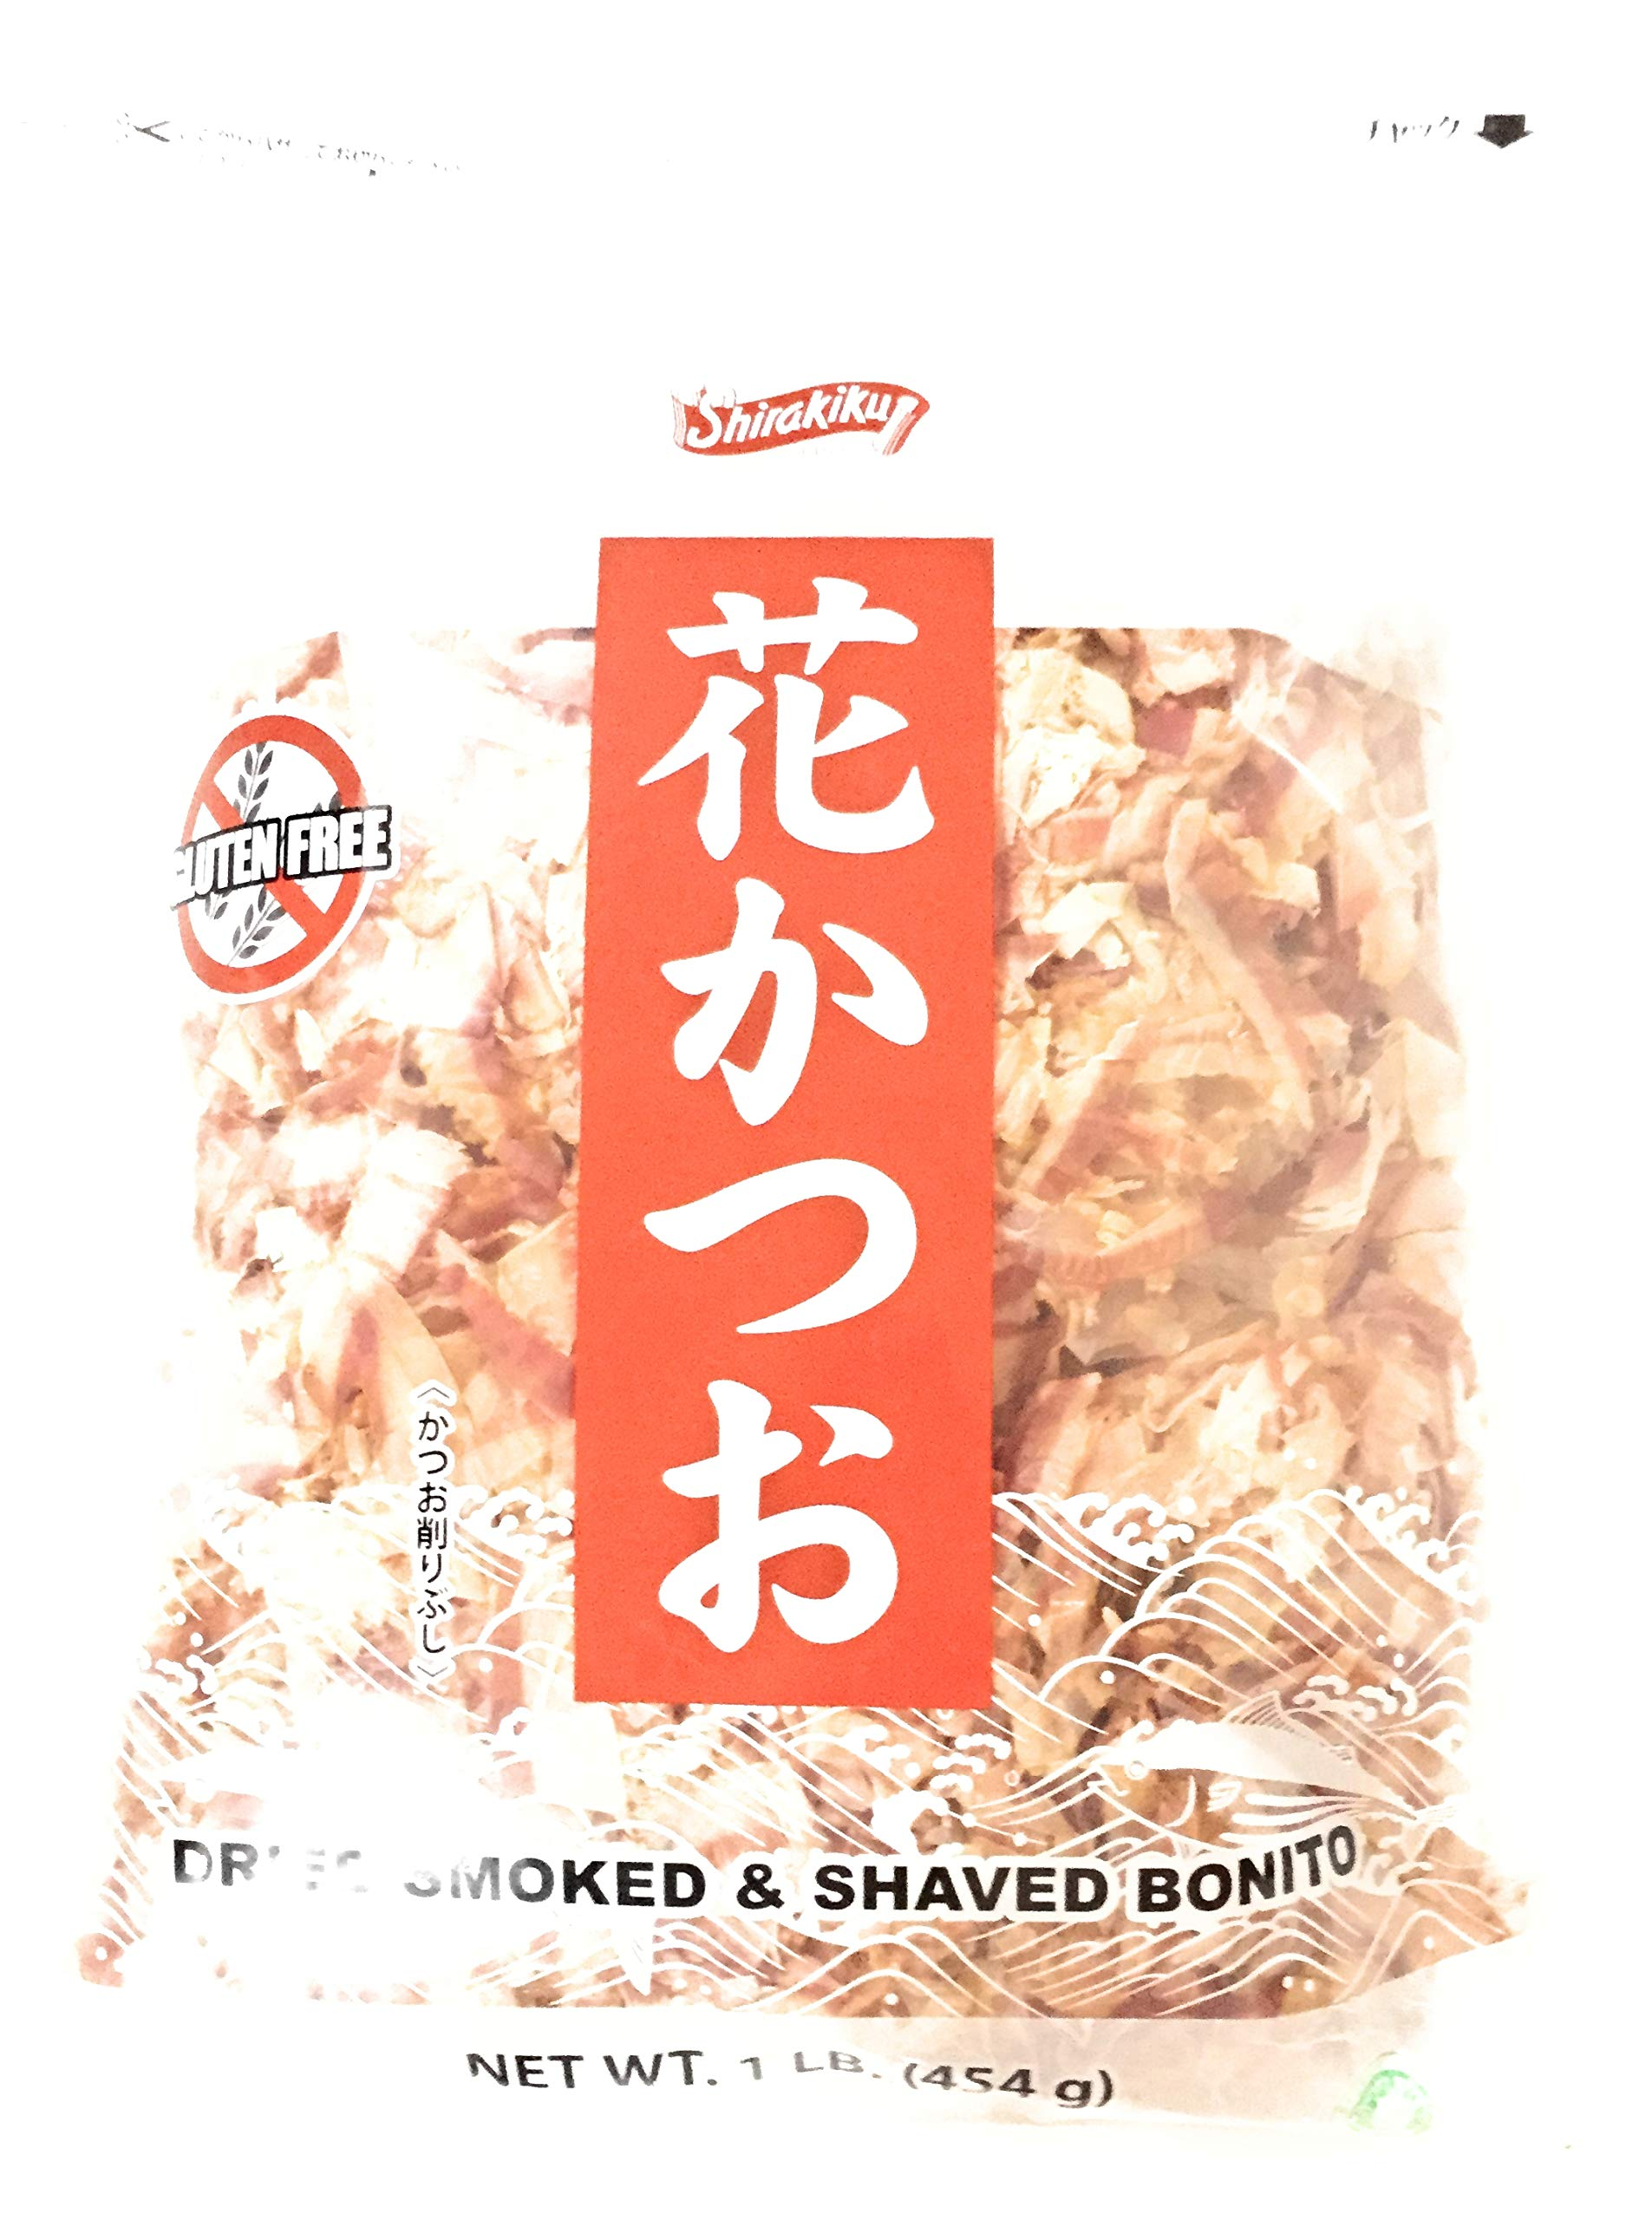 Shirakiku Dried Smoked & Shaved Bonito (1 lb)